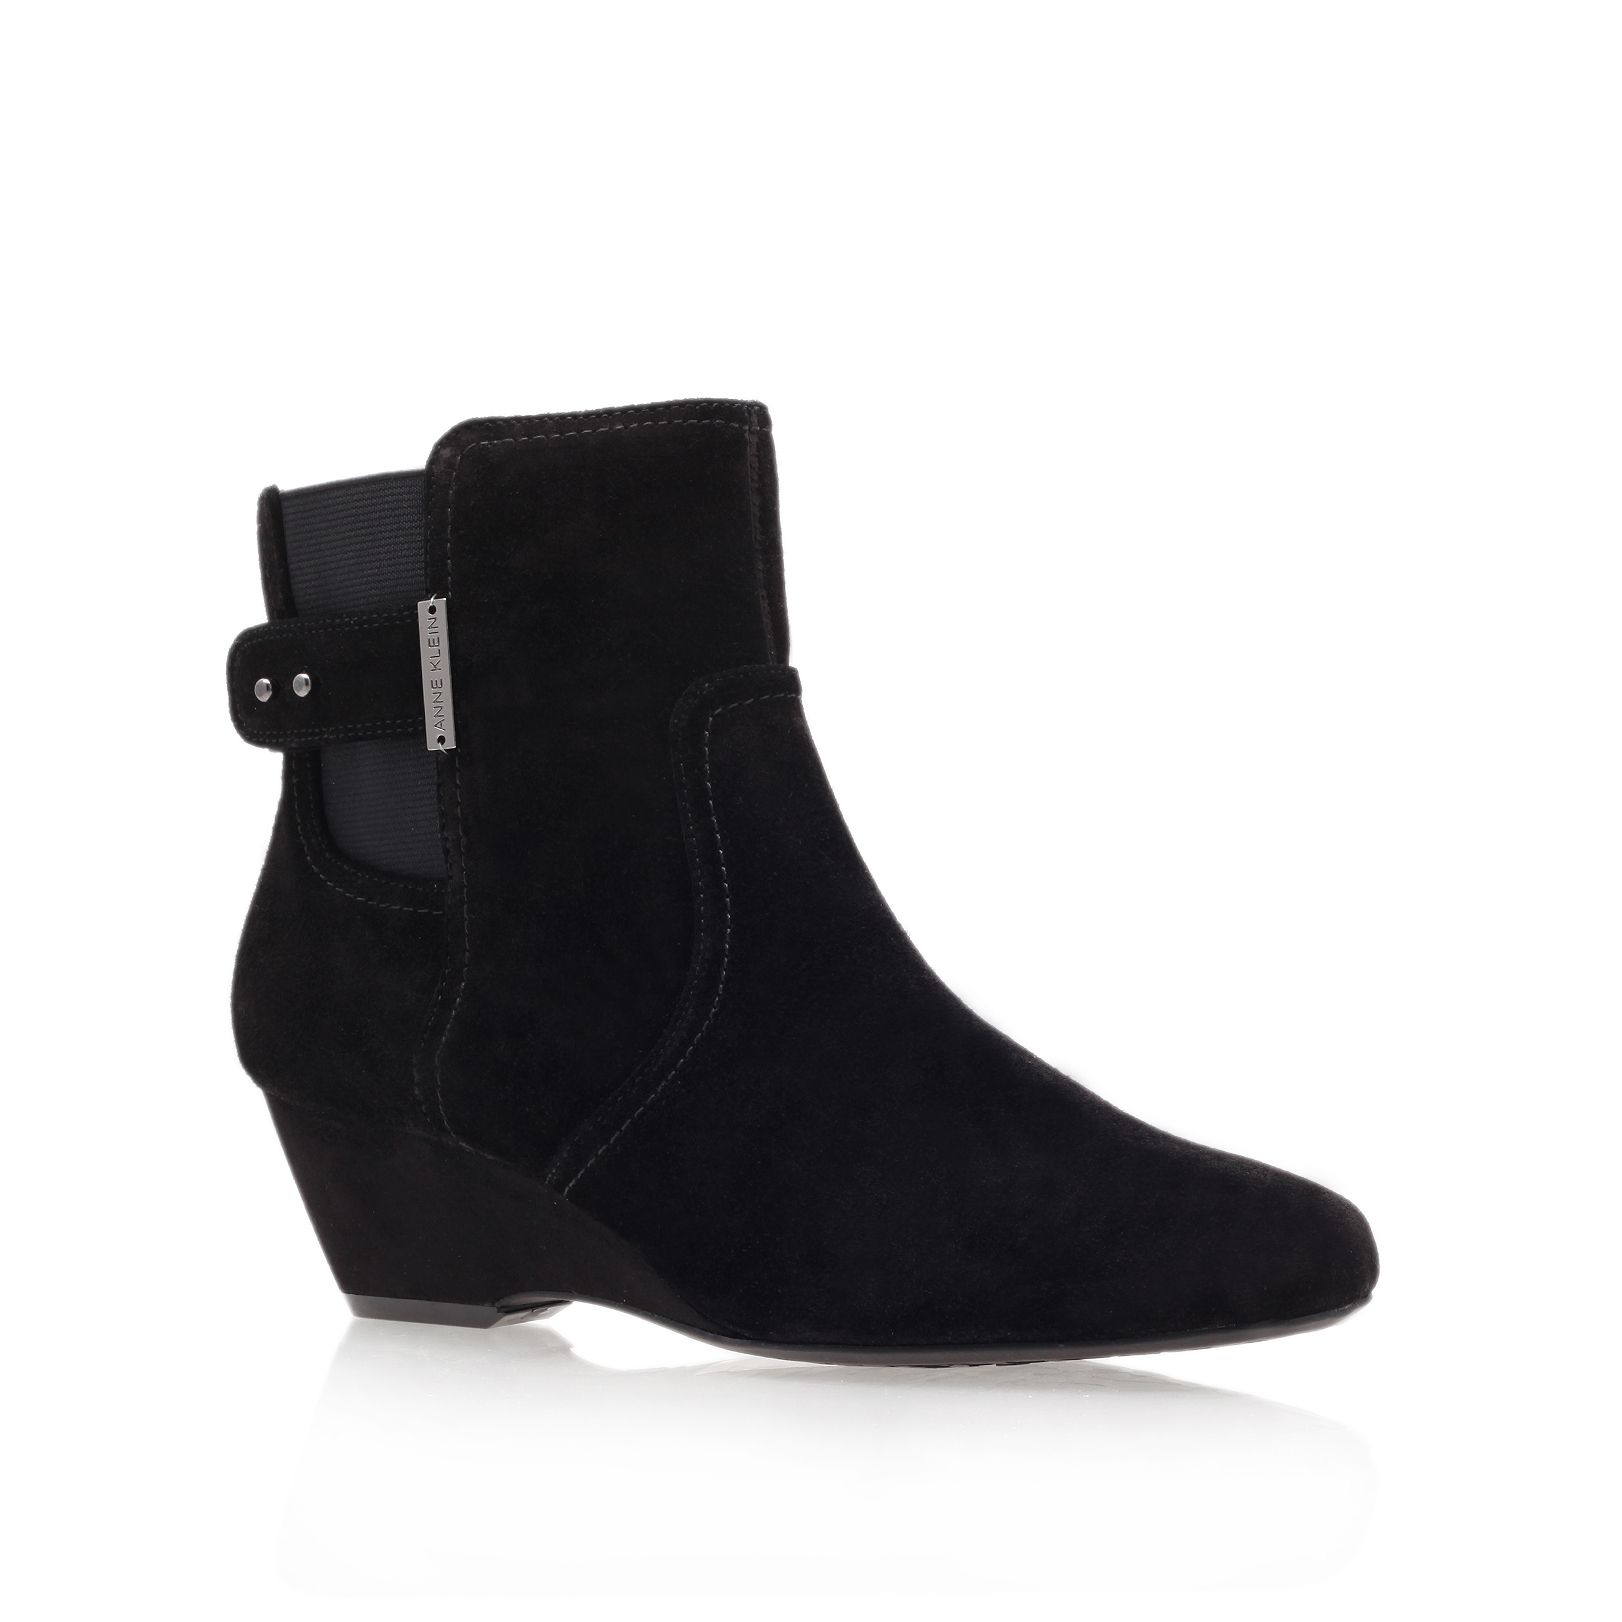 Damalis ankle boots